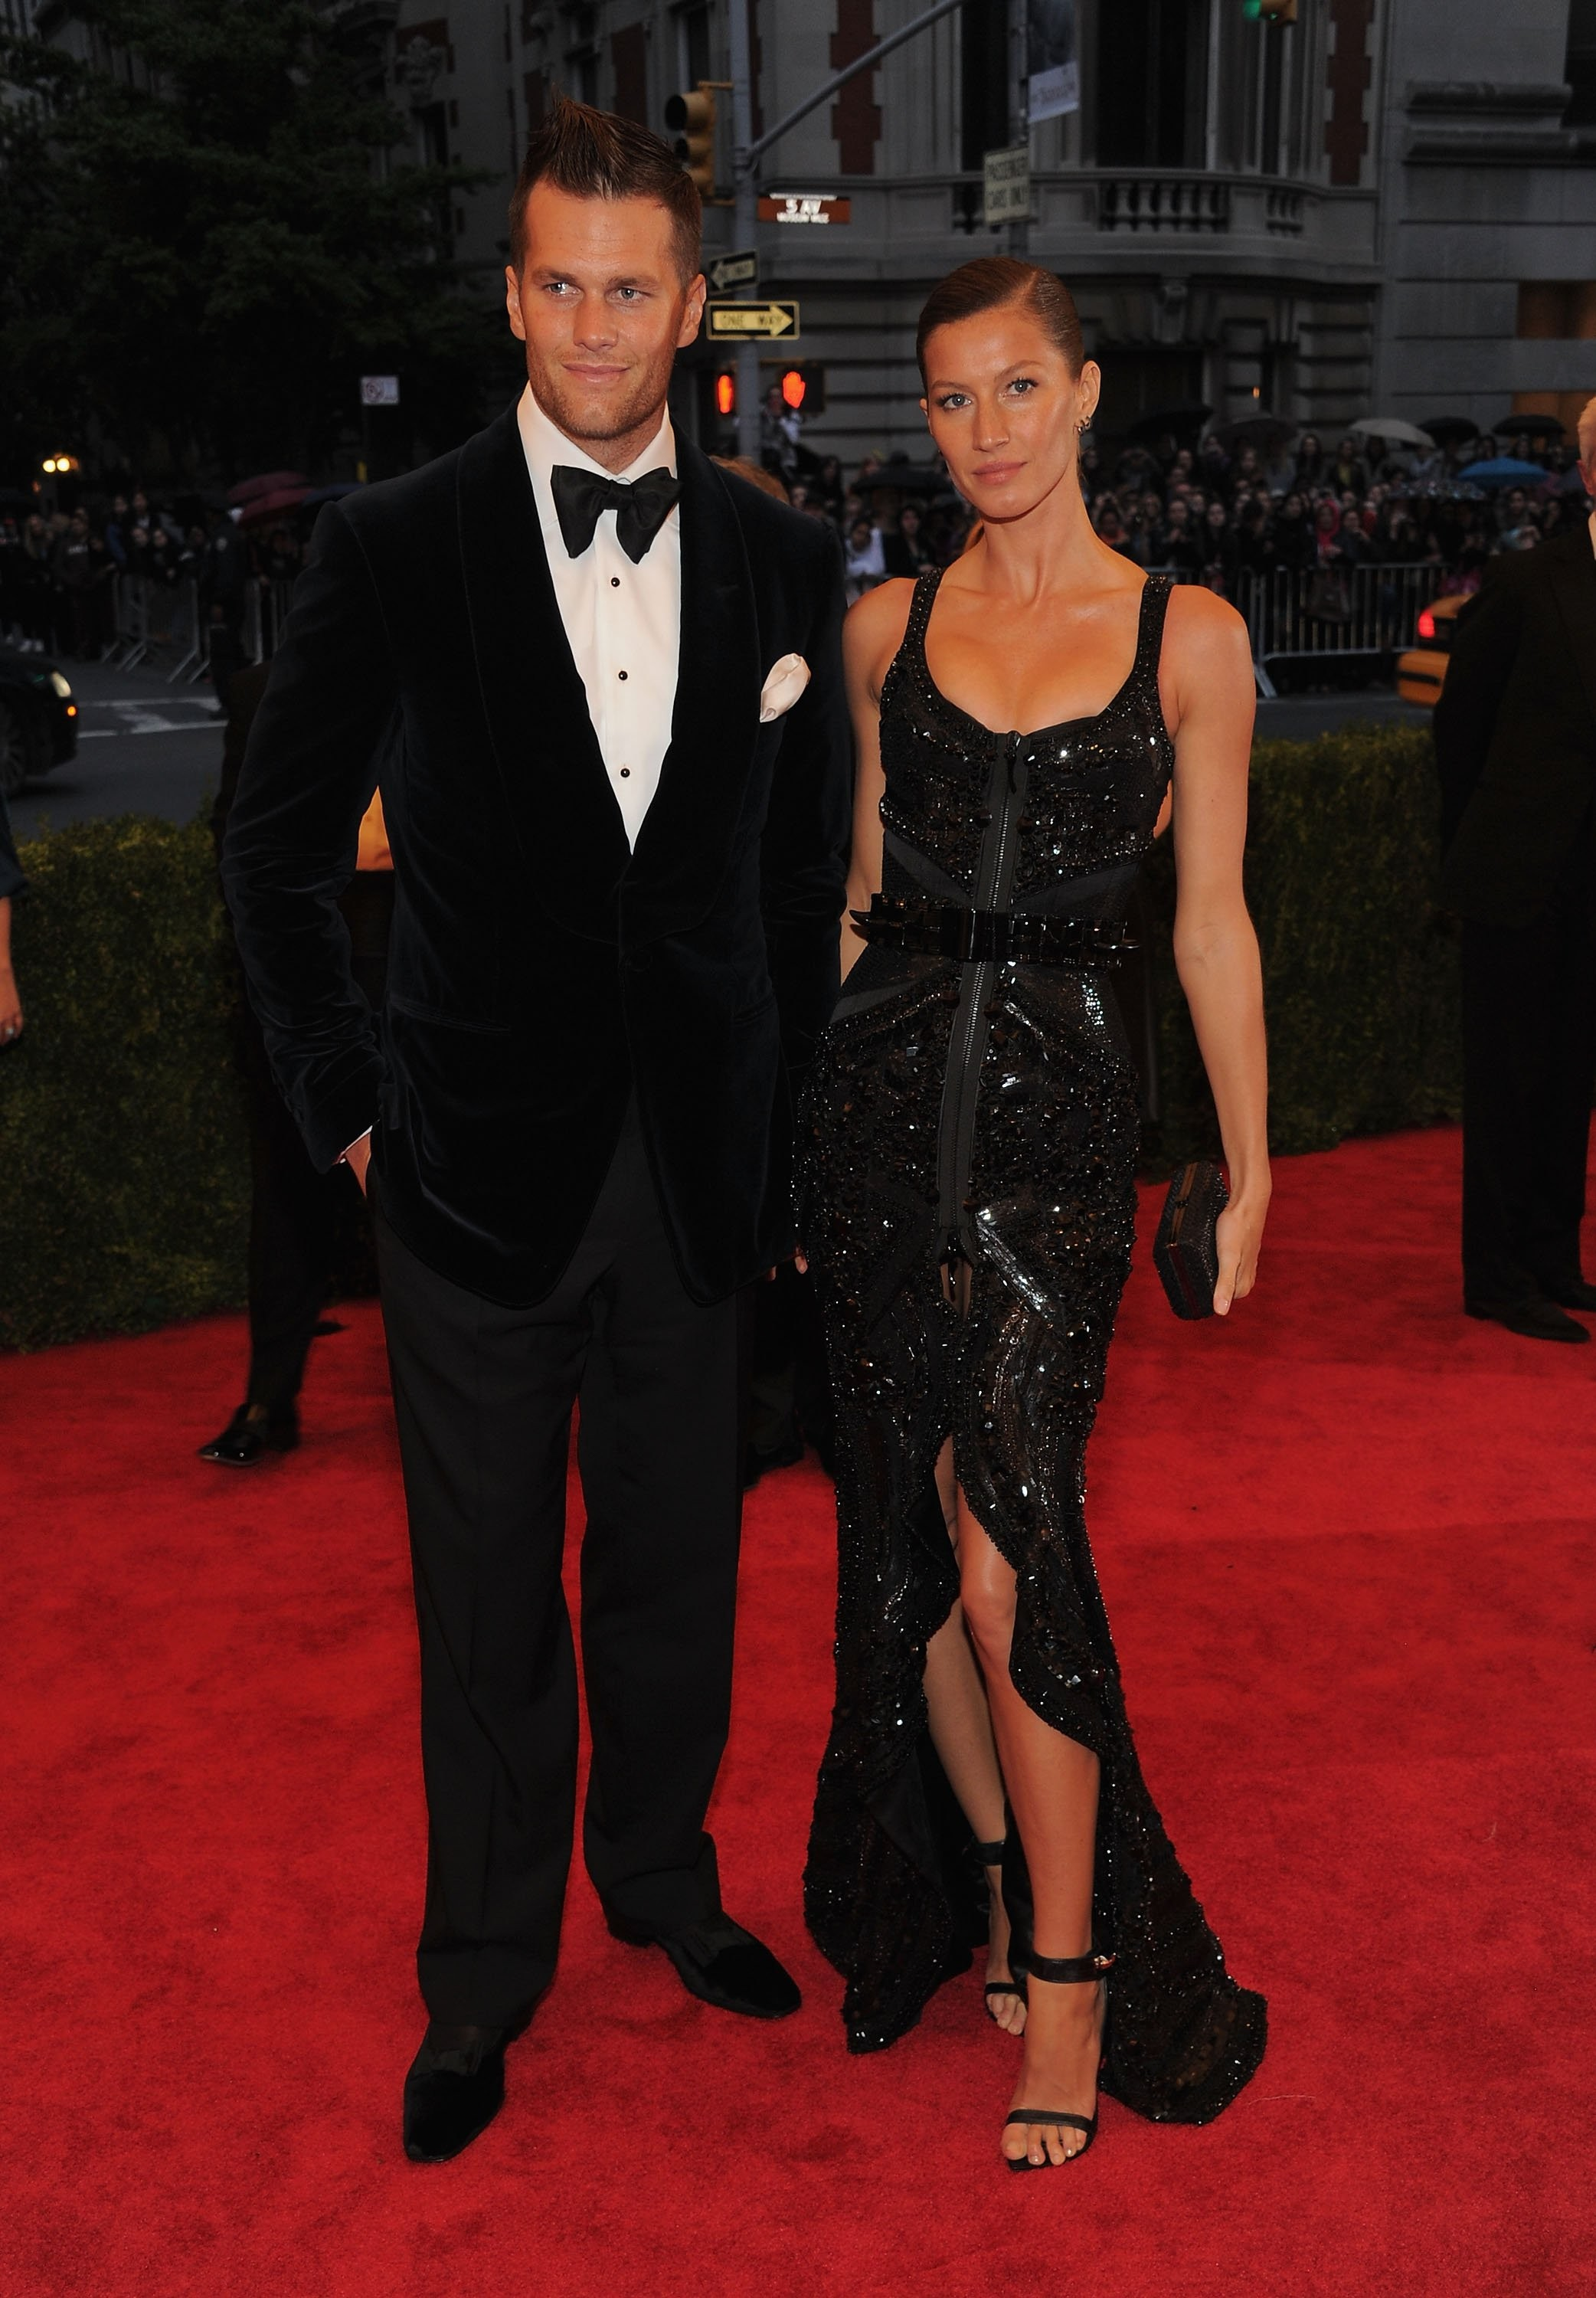 Gisele Bundchenm, de Givenchy, no Baile do Met de 2012 (Foto: Getty Images)